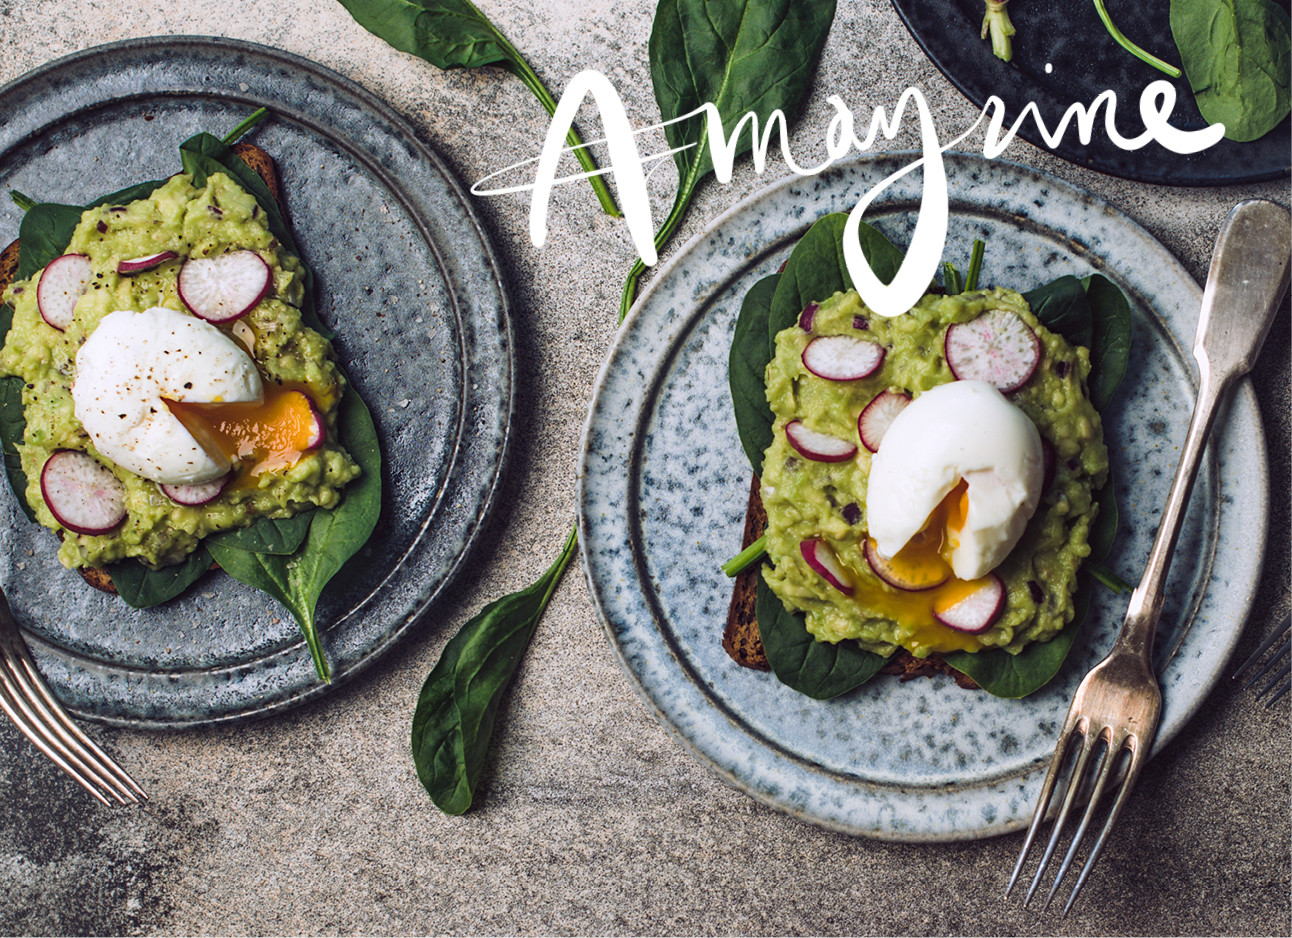 Recept favorflav met avocado spinazie en eieren